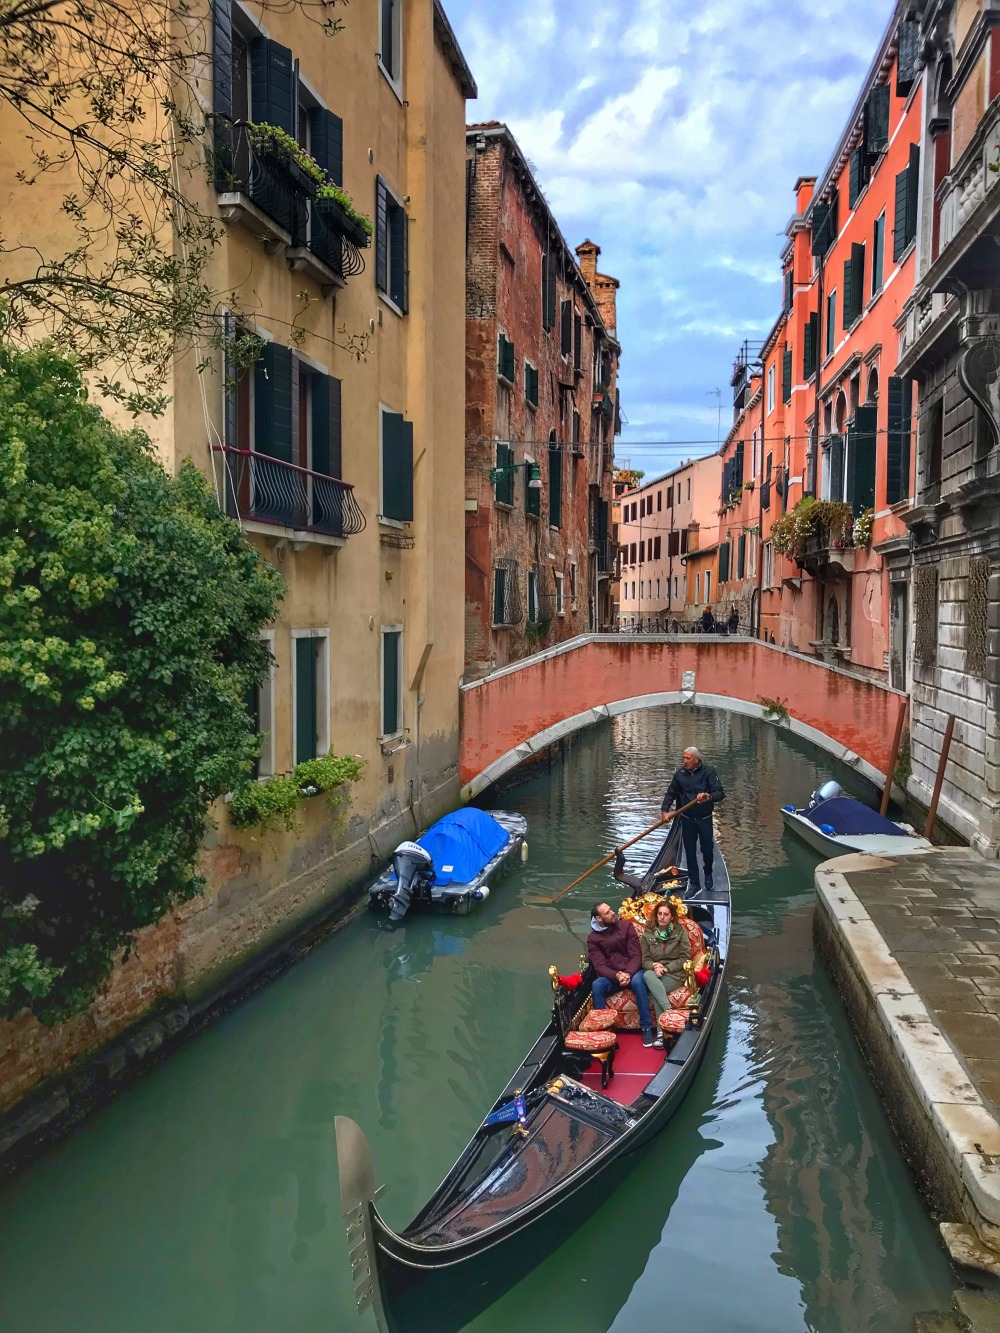 Offbeat Gondola Rides in Venice, Italy